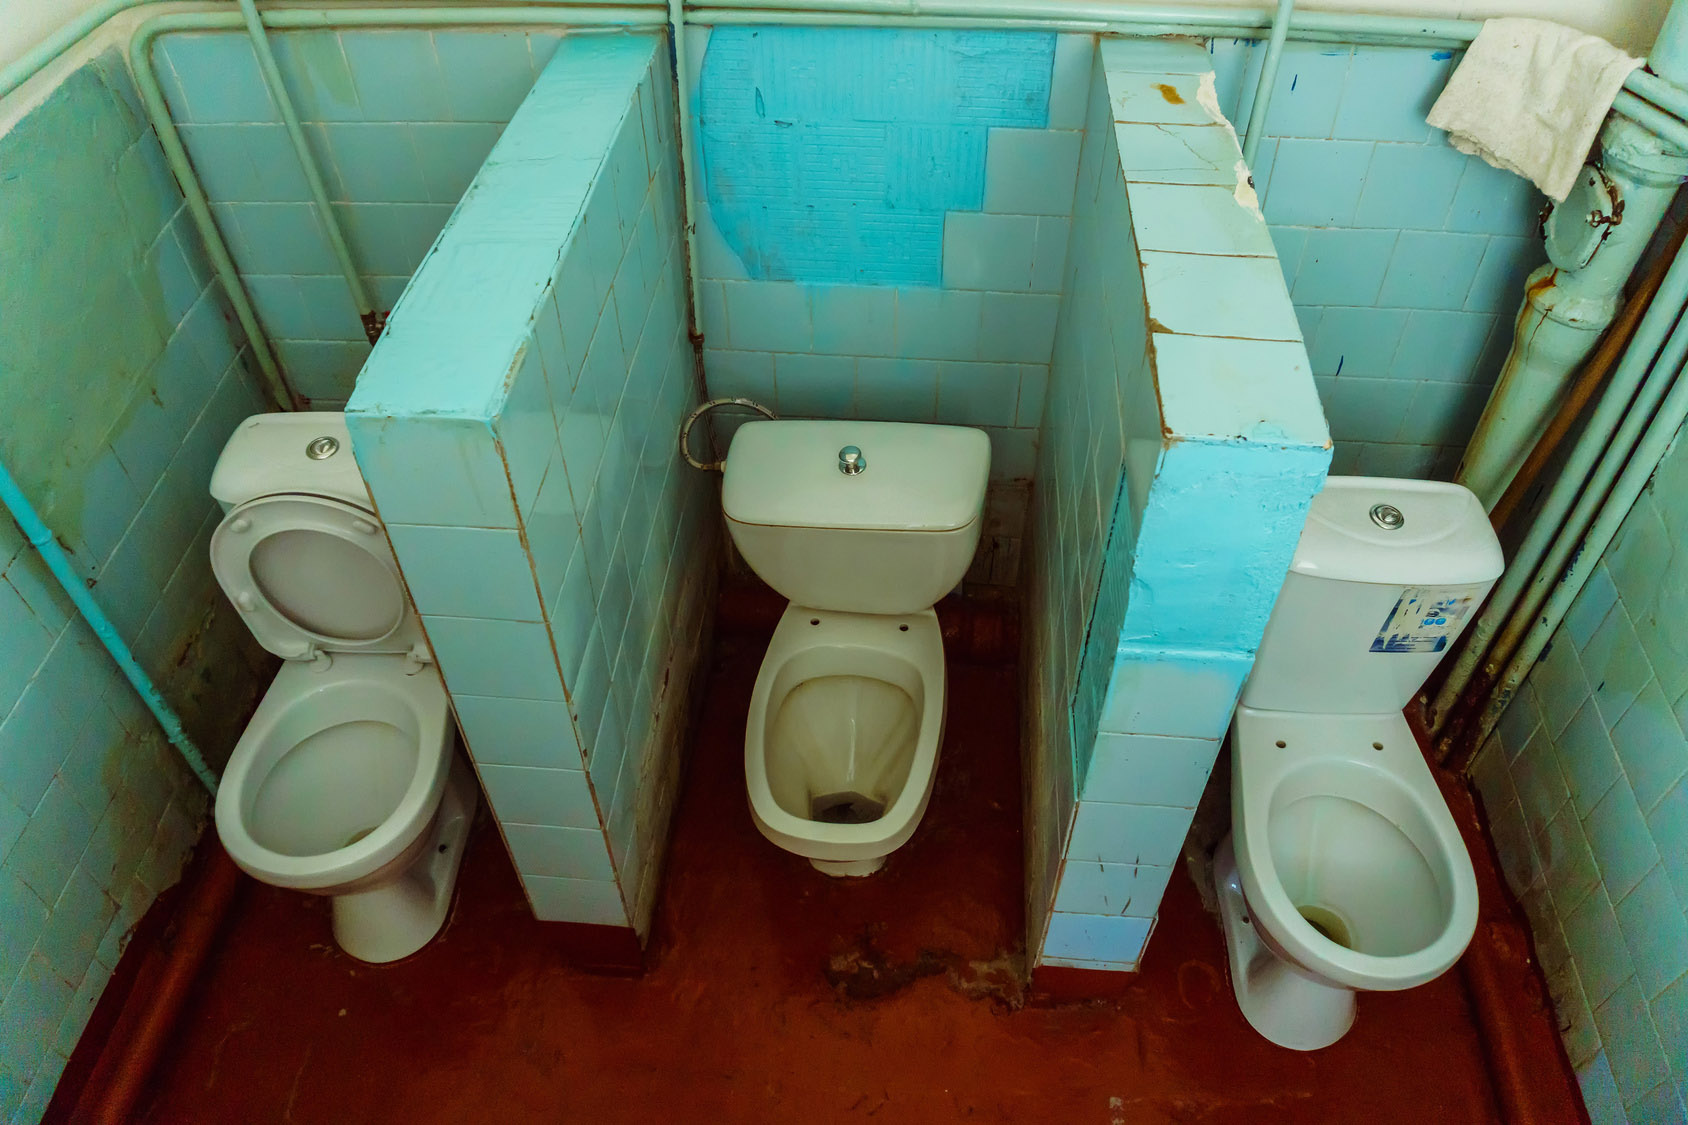 old toilets need replacing